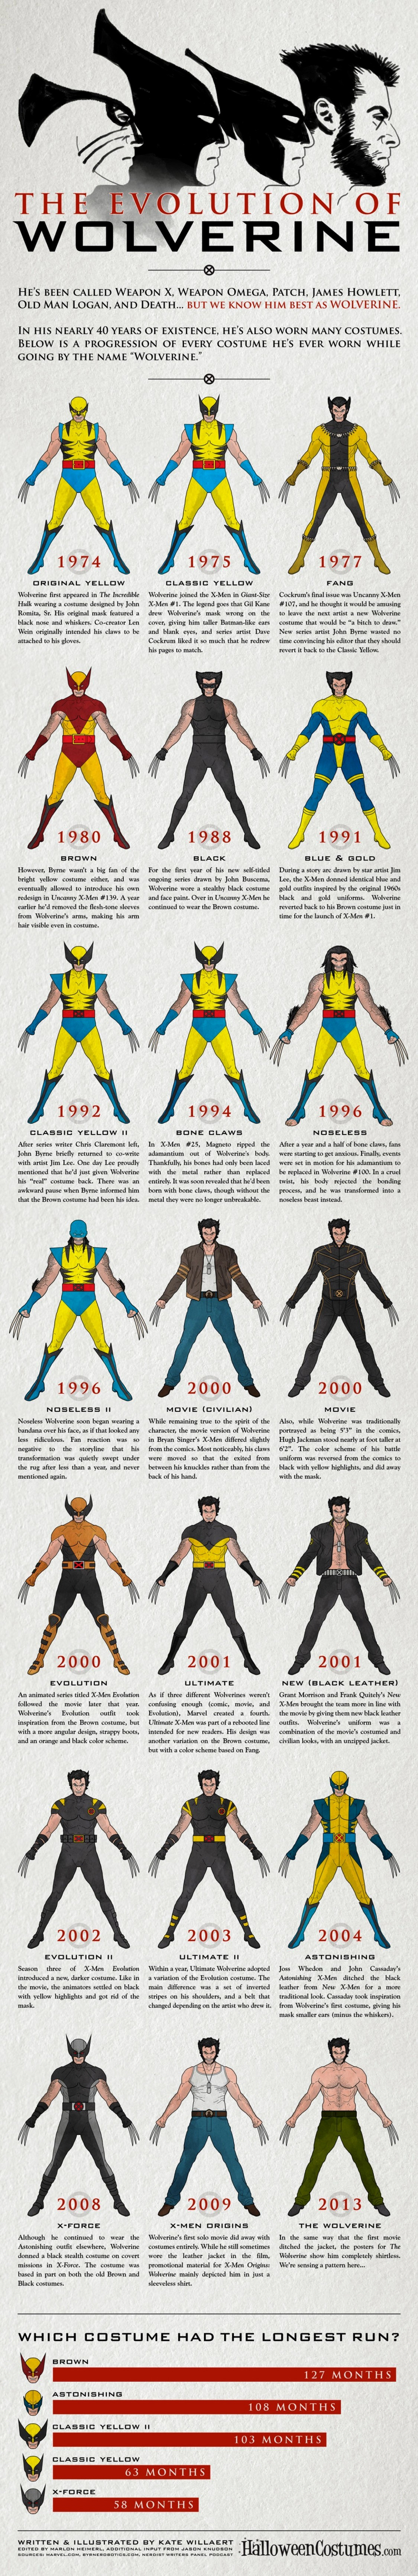 20 the-evolution-of-wolverine_51f050f360f28_w1500